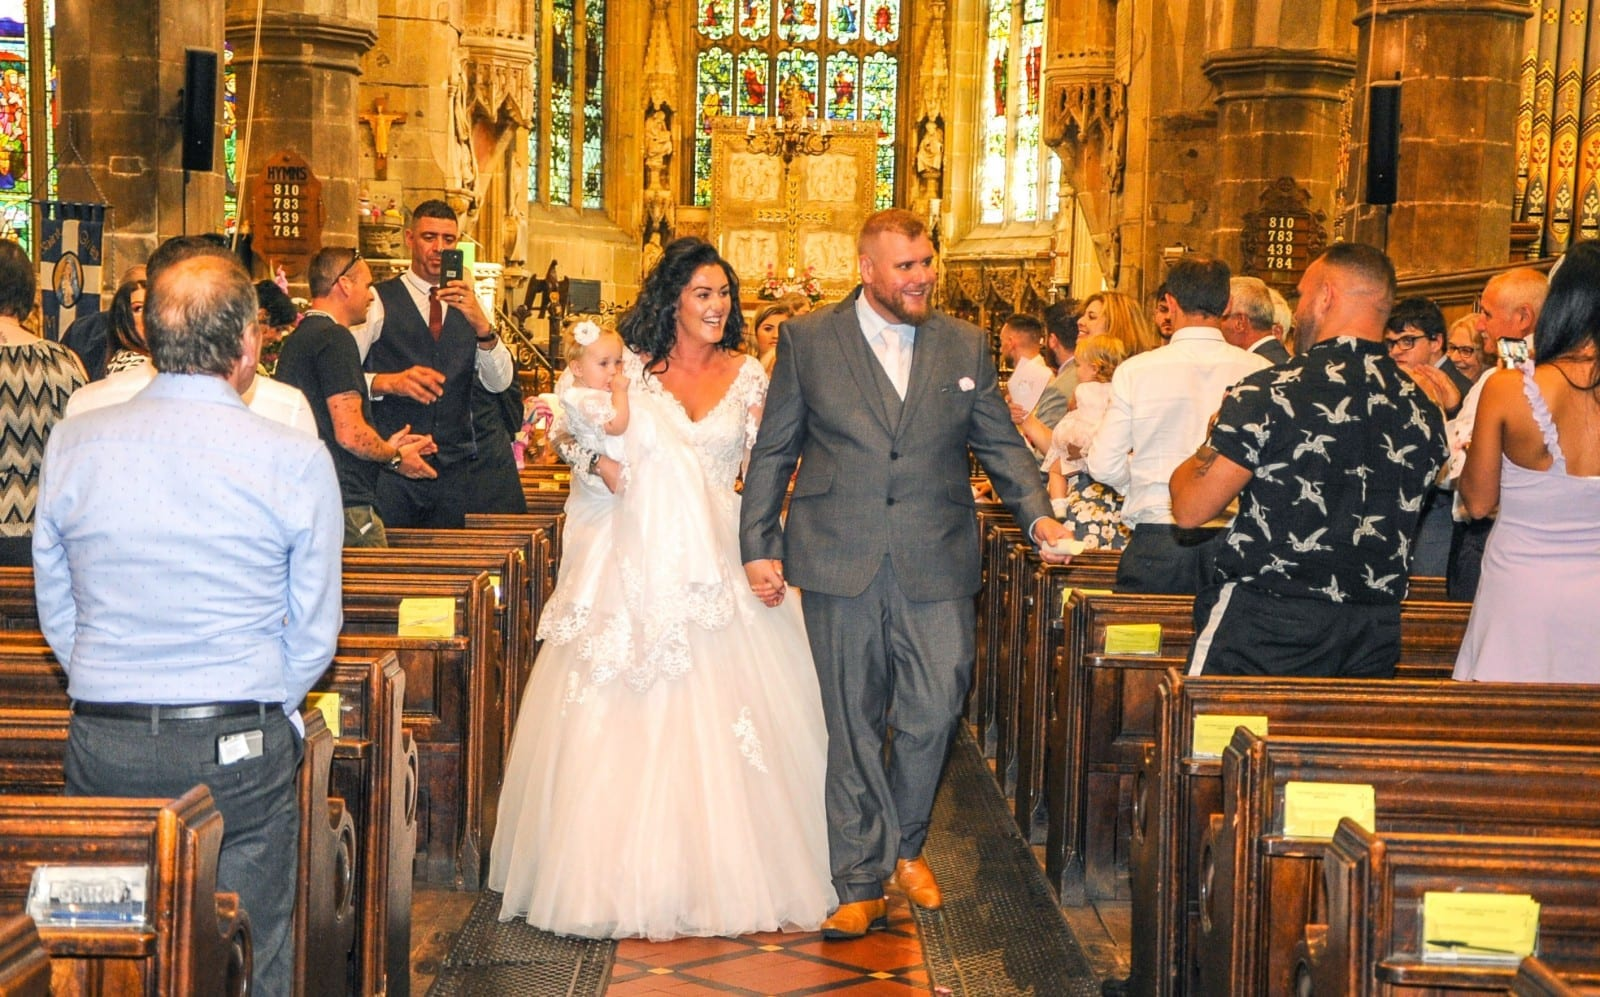 Couple Leave Family Stunned By Turning Their Daughter's Christening Into Surprise WEDDING